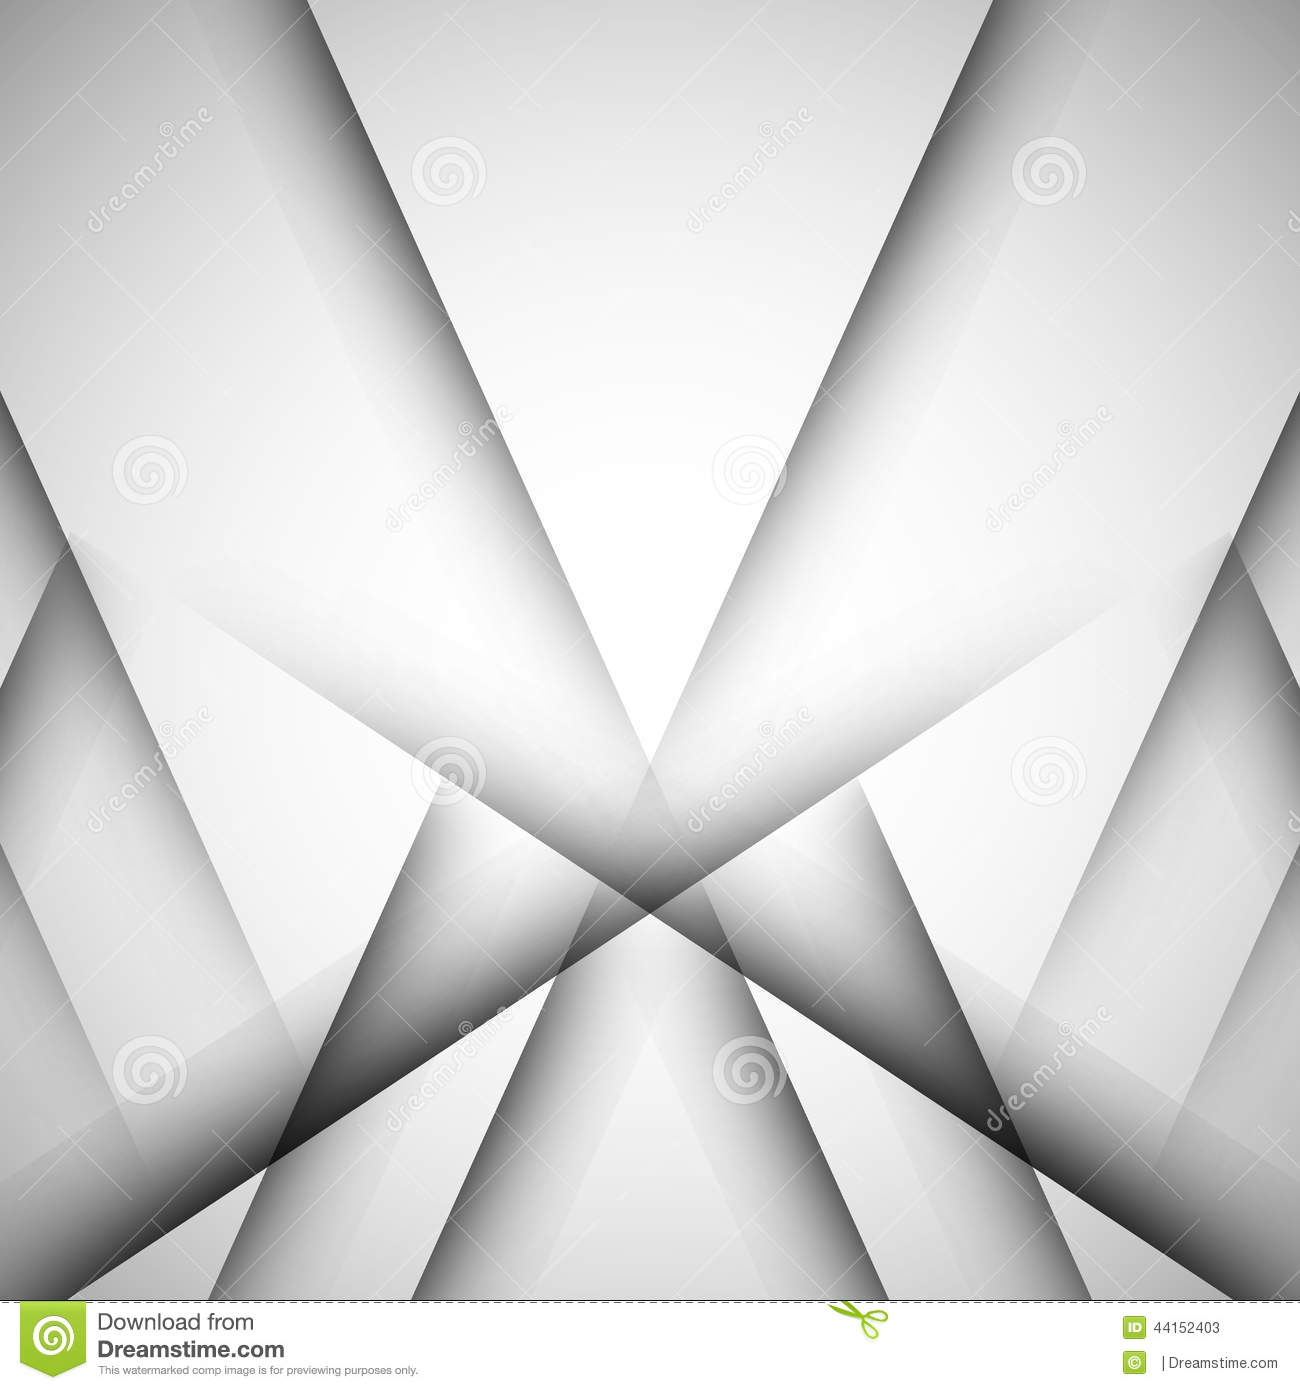 Simple Vector Background Of Straight Gray Lines Stock